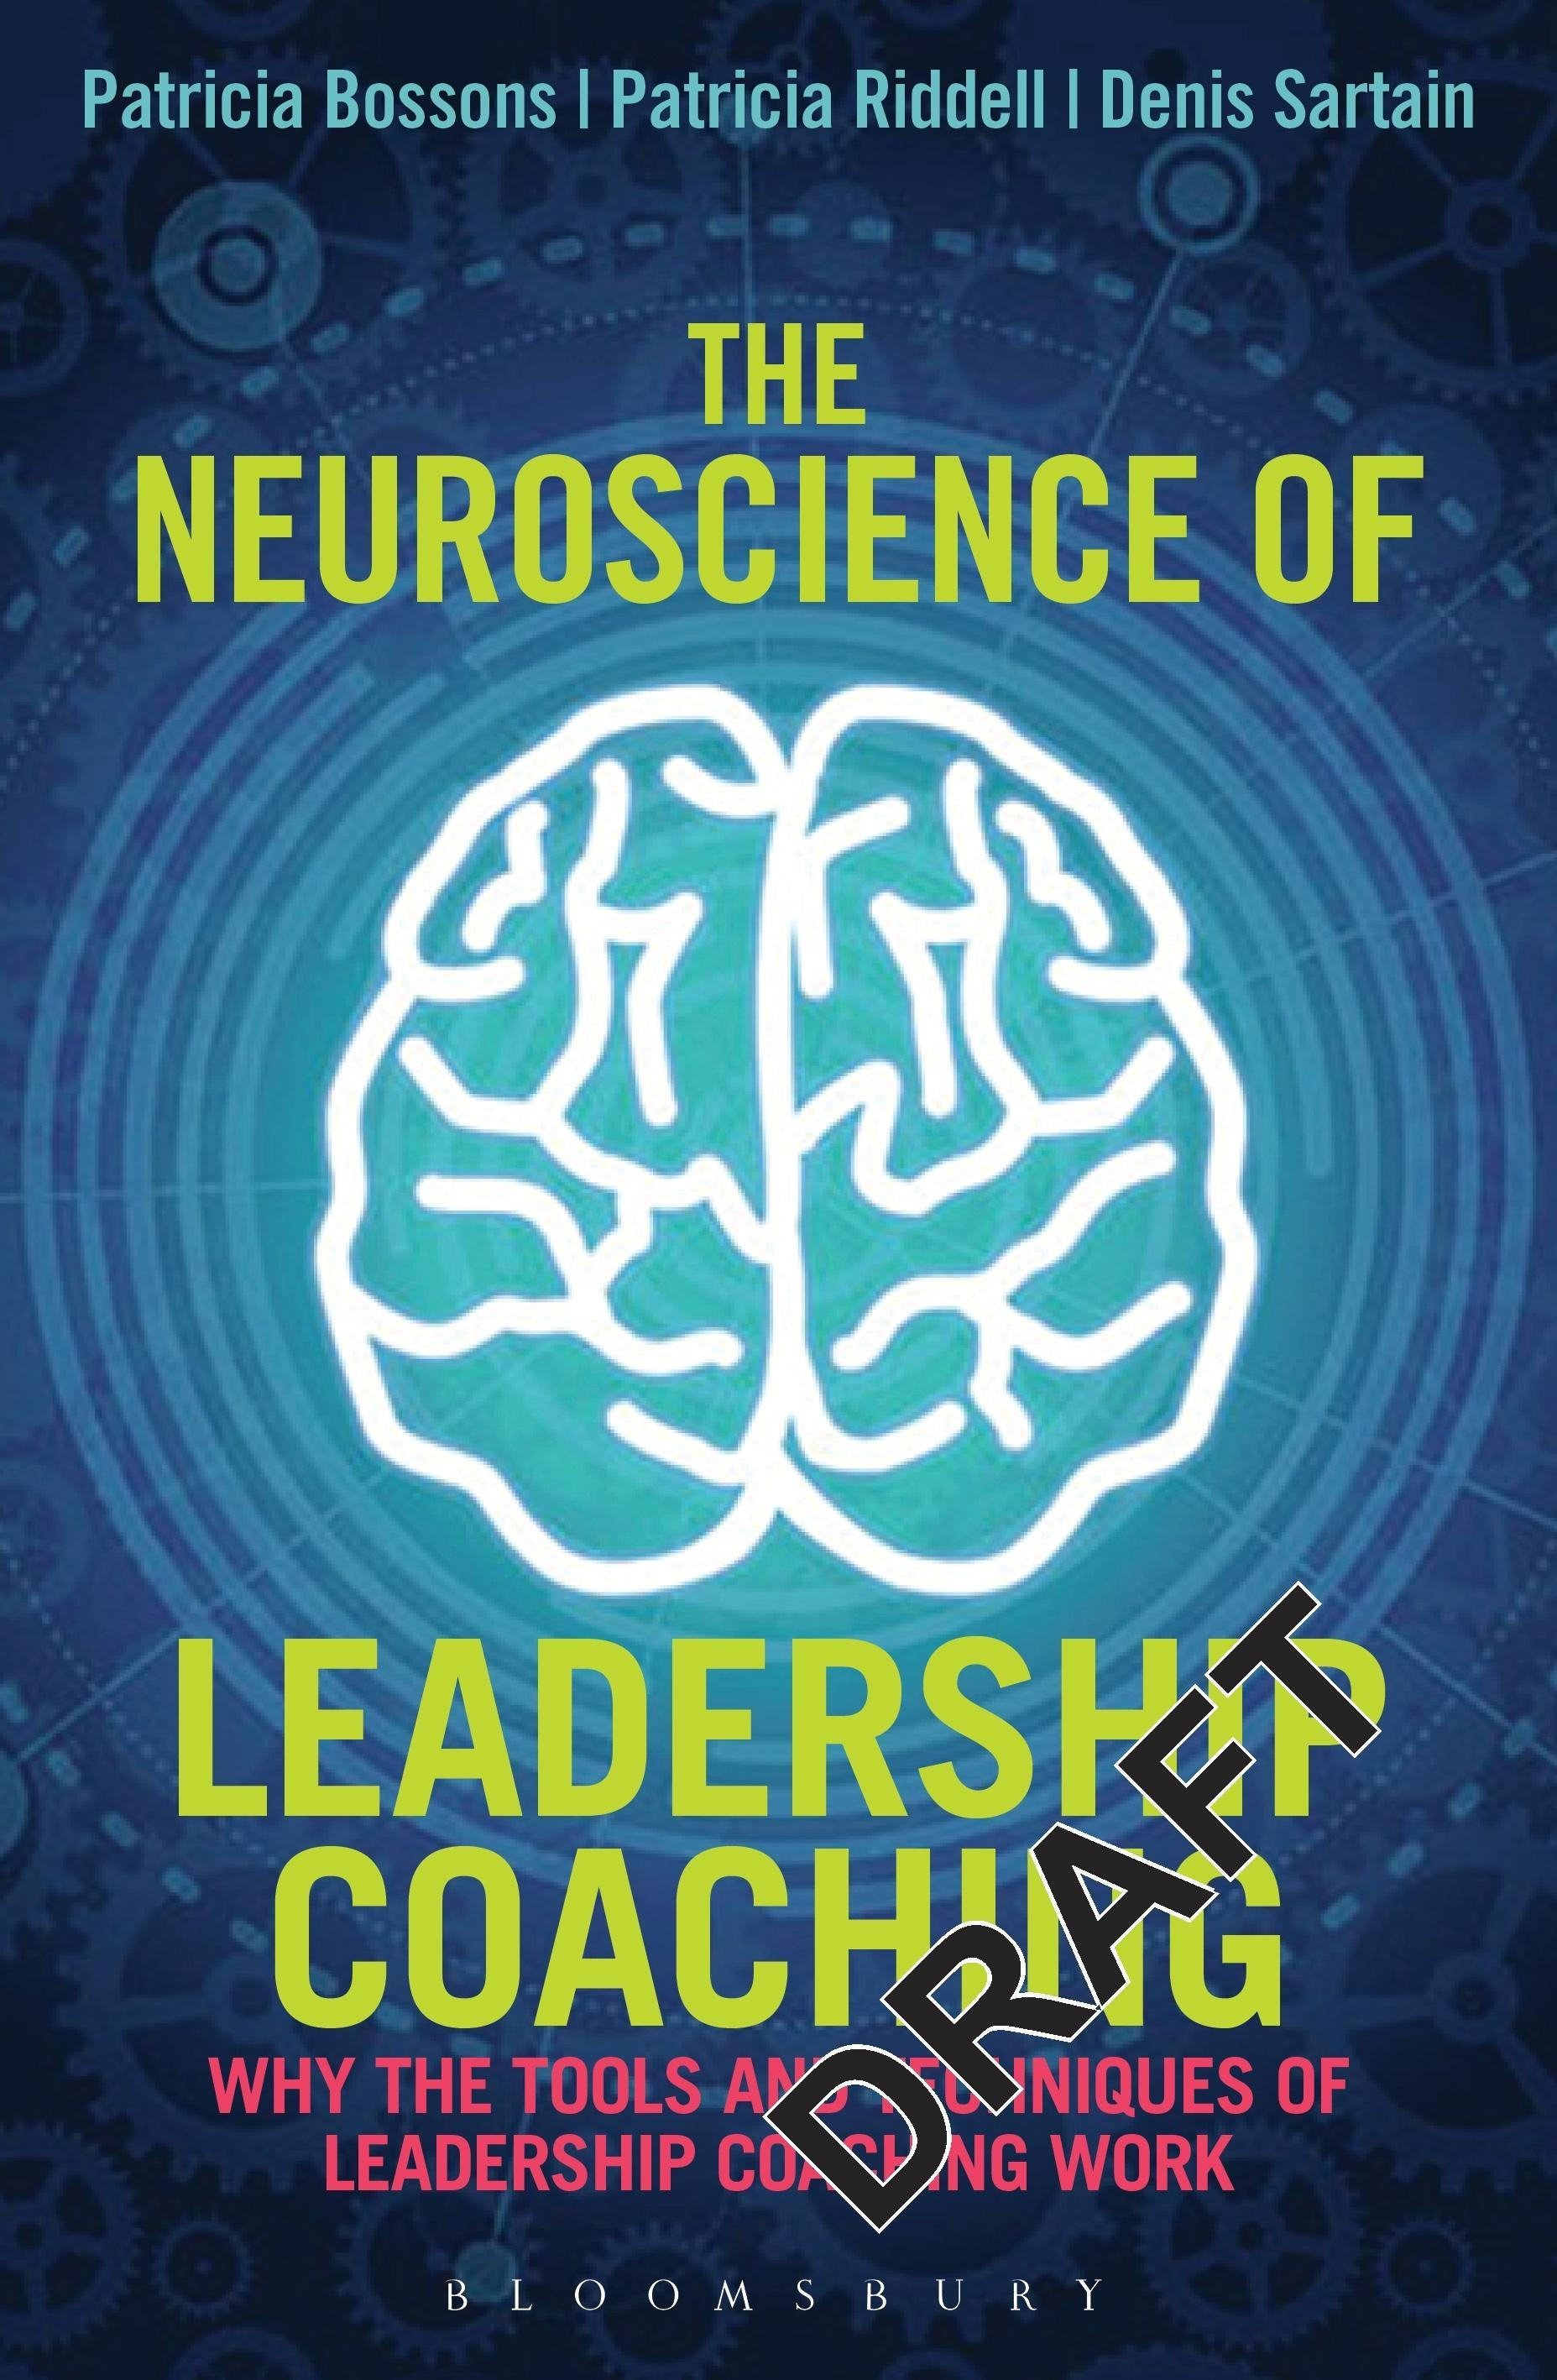 The-Neuroscience-of-Leadership-Coaching-Patricia-Bossons